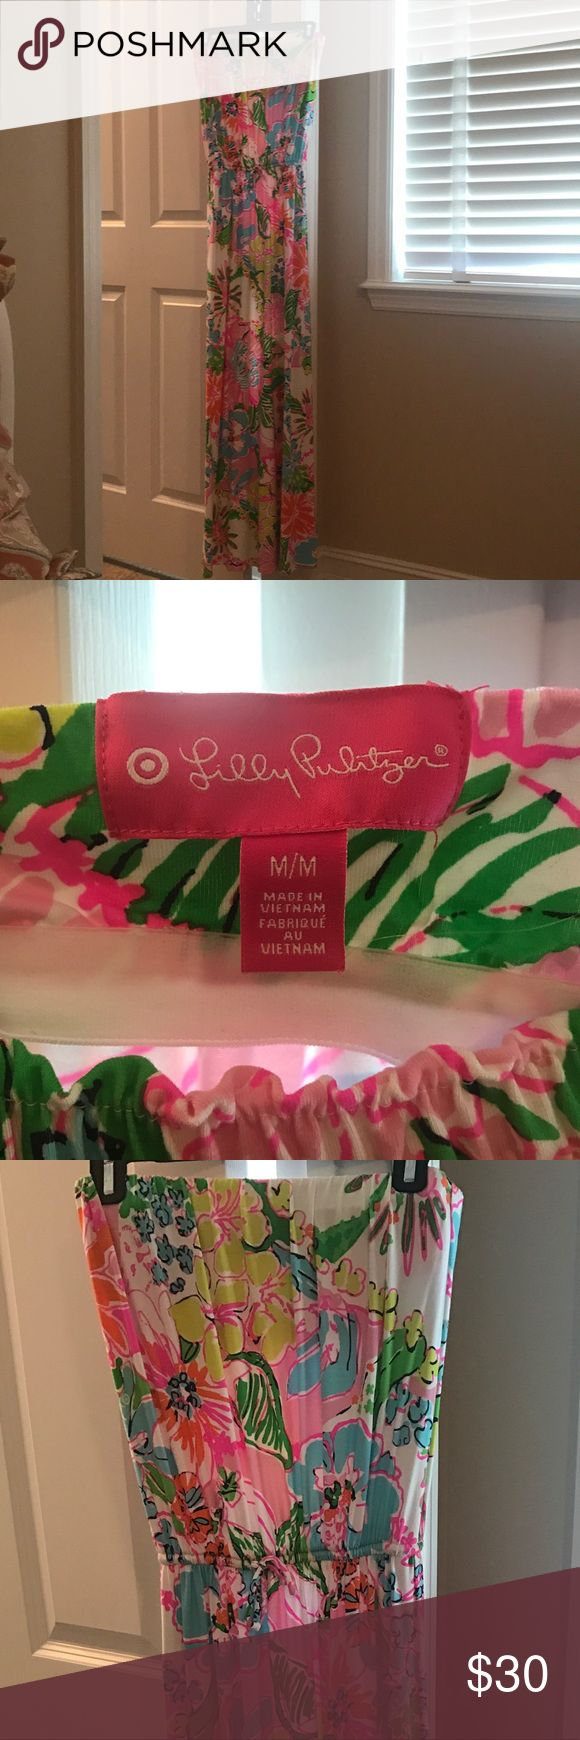 Lilly Pulitzer for Target Maxi dress. Size Medium Lilly for Target maxi dress. Size Medium. Worn just a couple of times. Lilly Pulitzer for Target Dresses Maxi